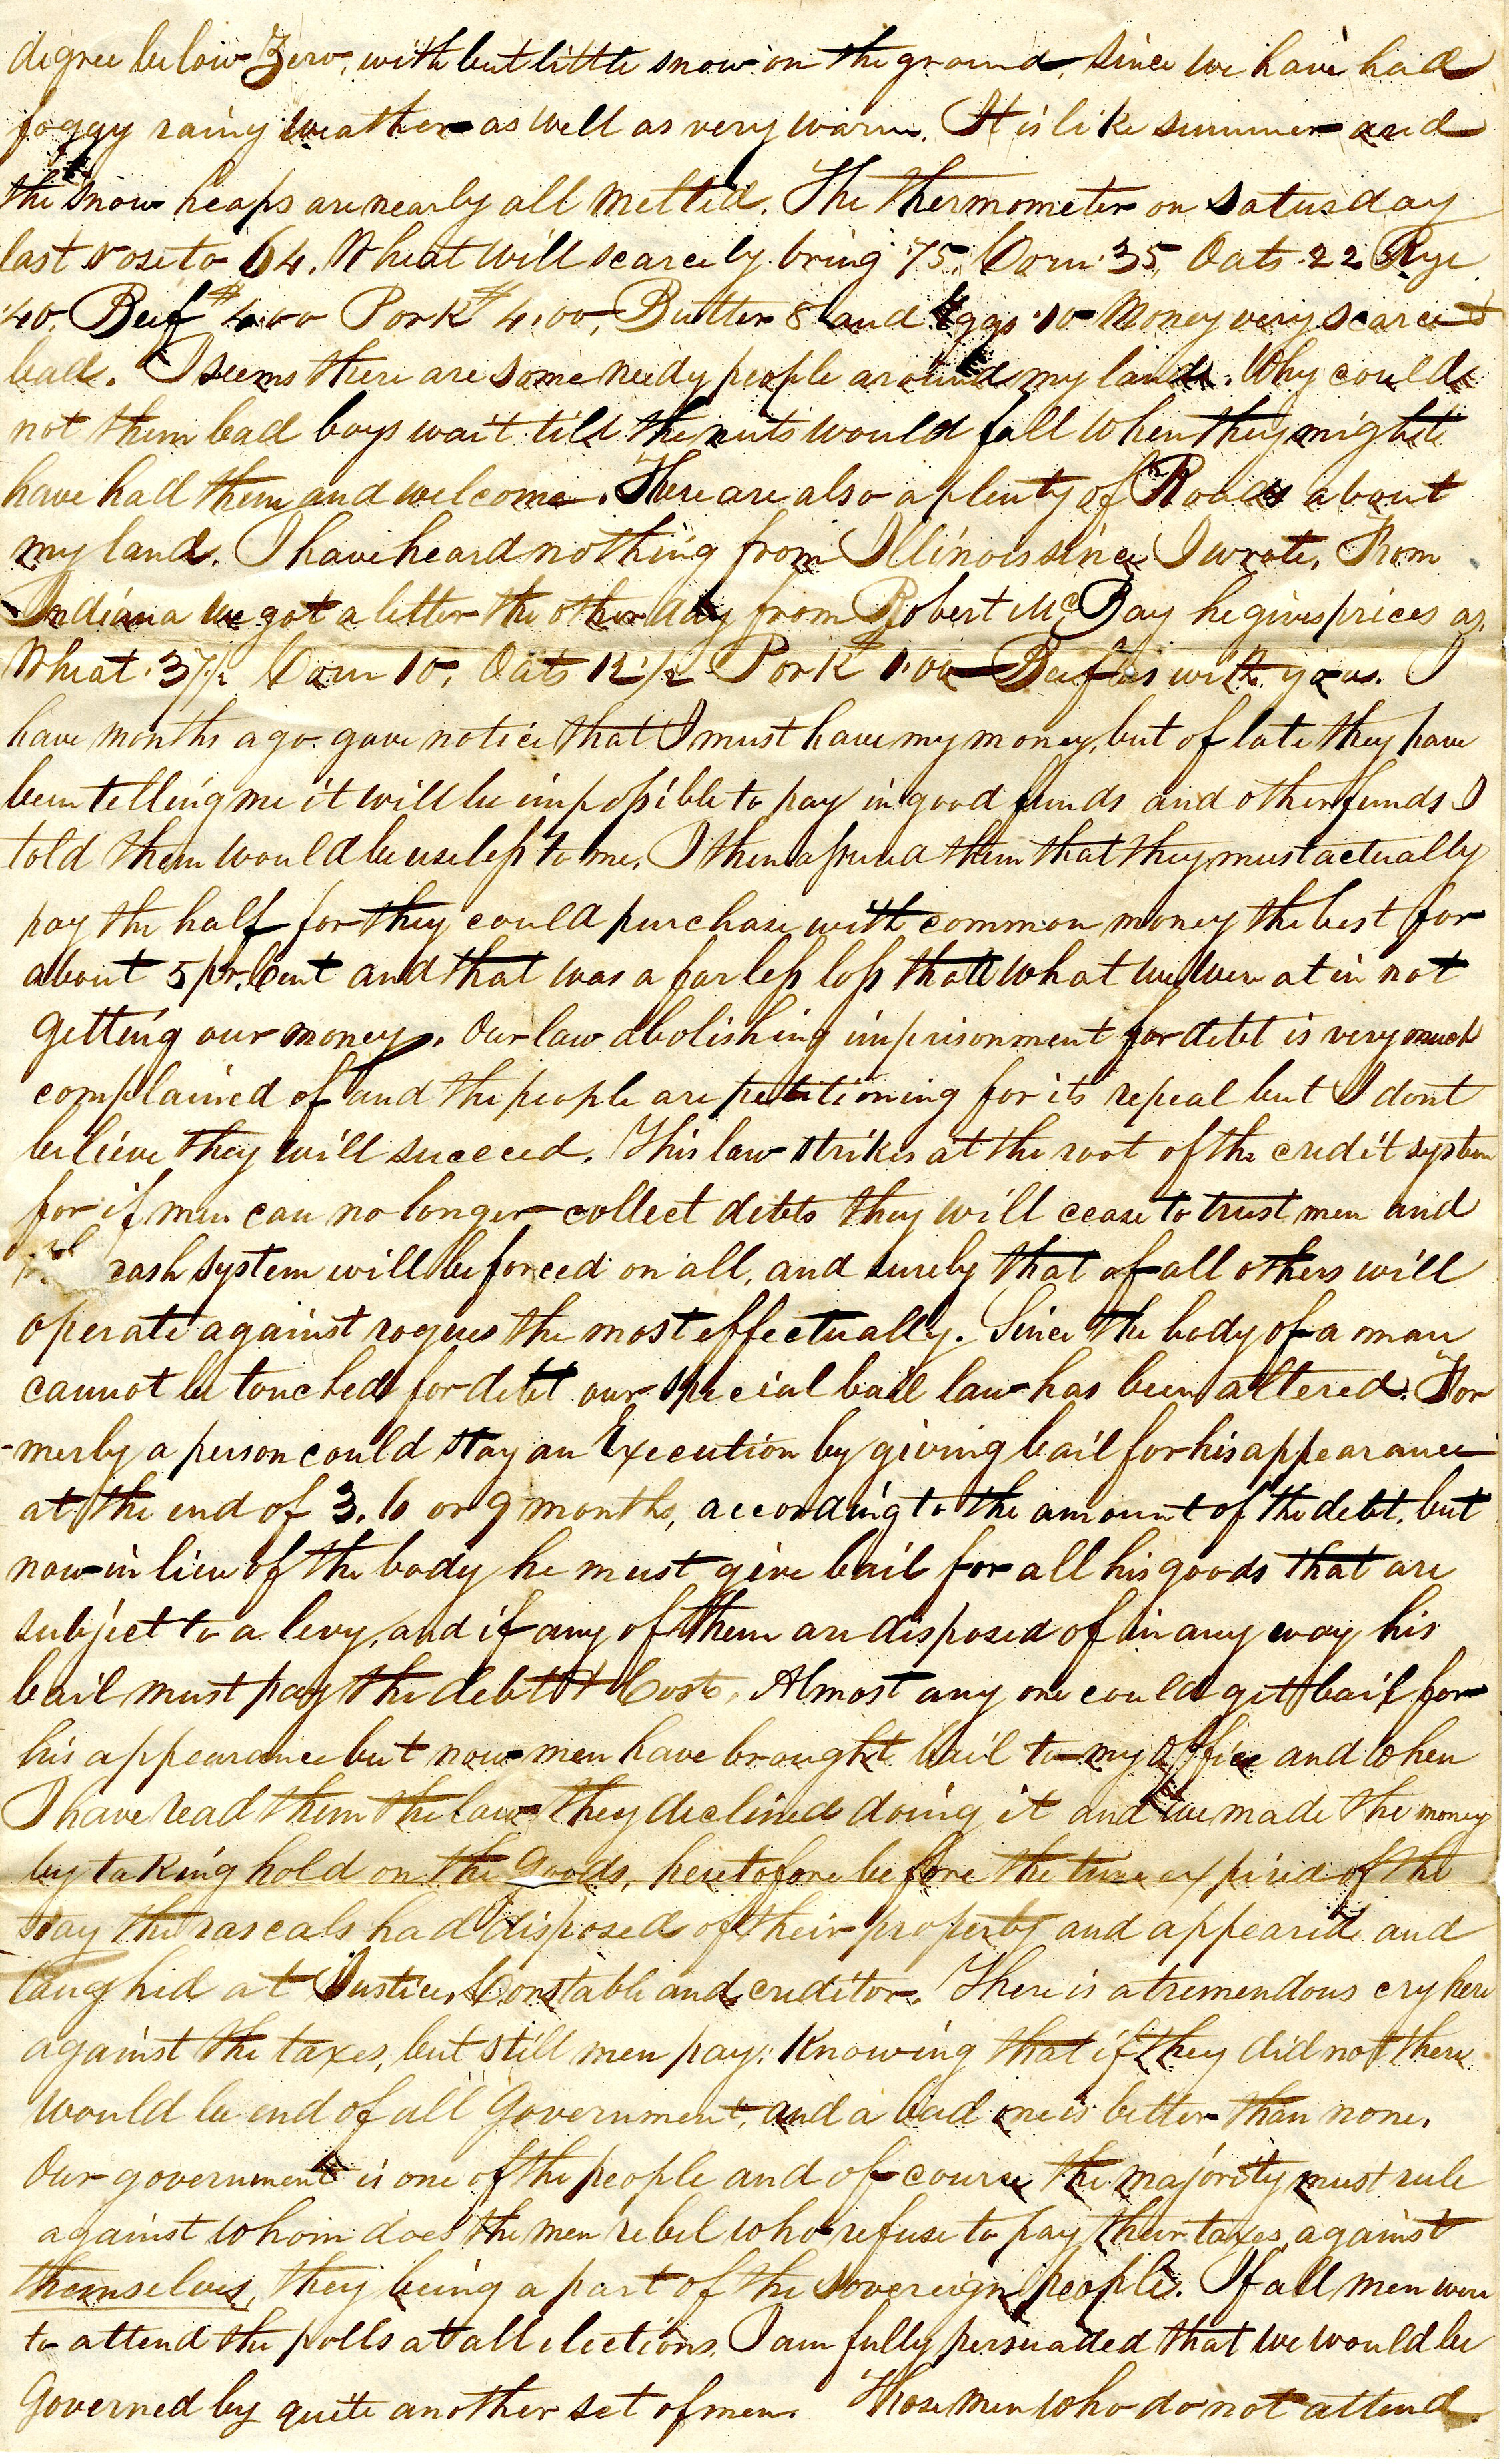 Letter From William Geddes to John Geddes, January 23, 1843 image